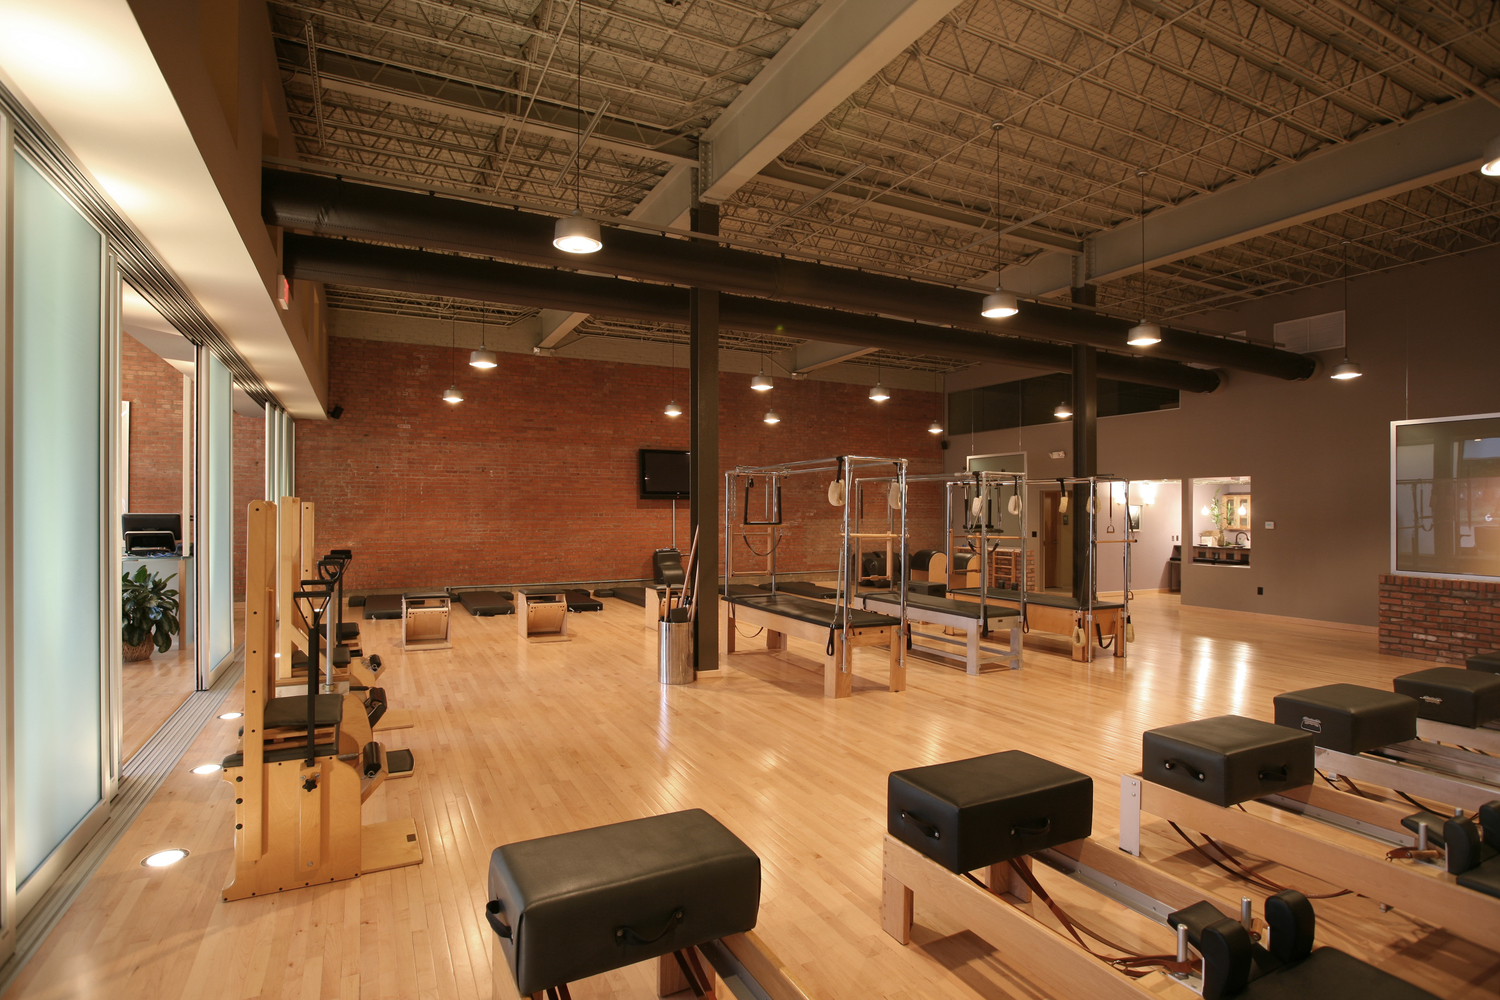 balance studio tyler - pilates studio architect - commercial interior architect tyler - butler architectural group